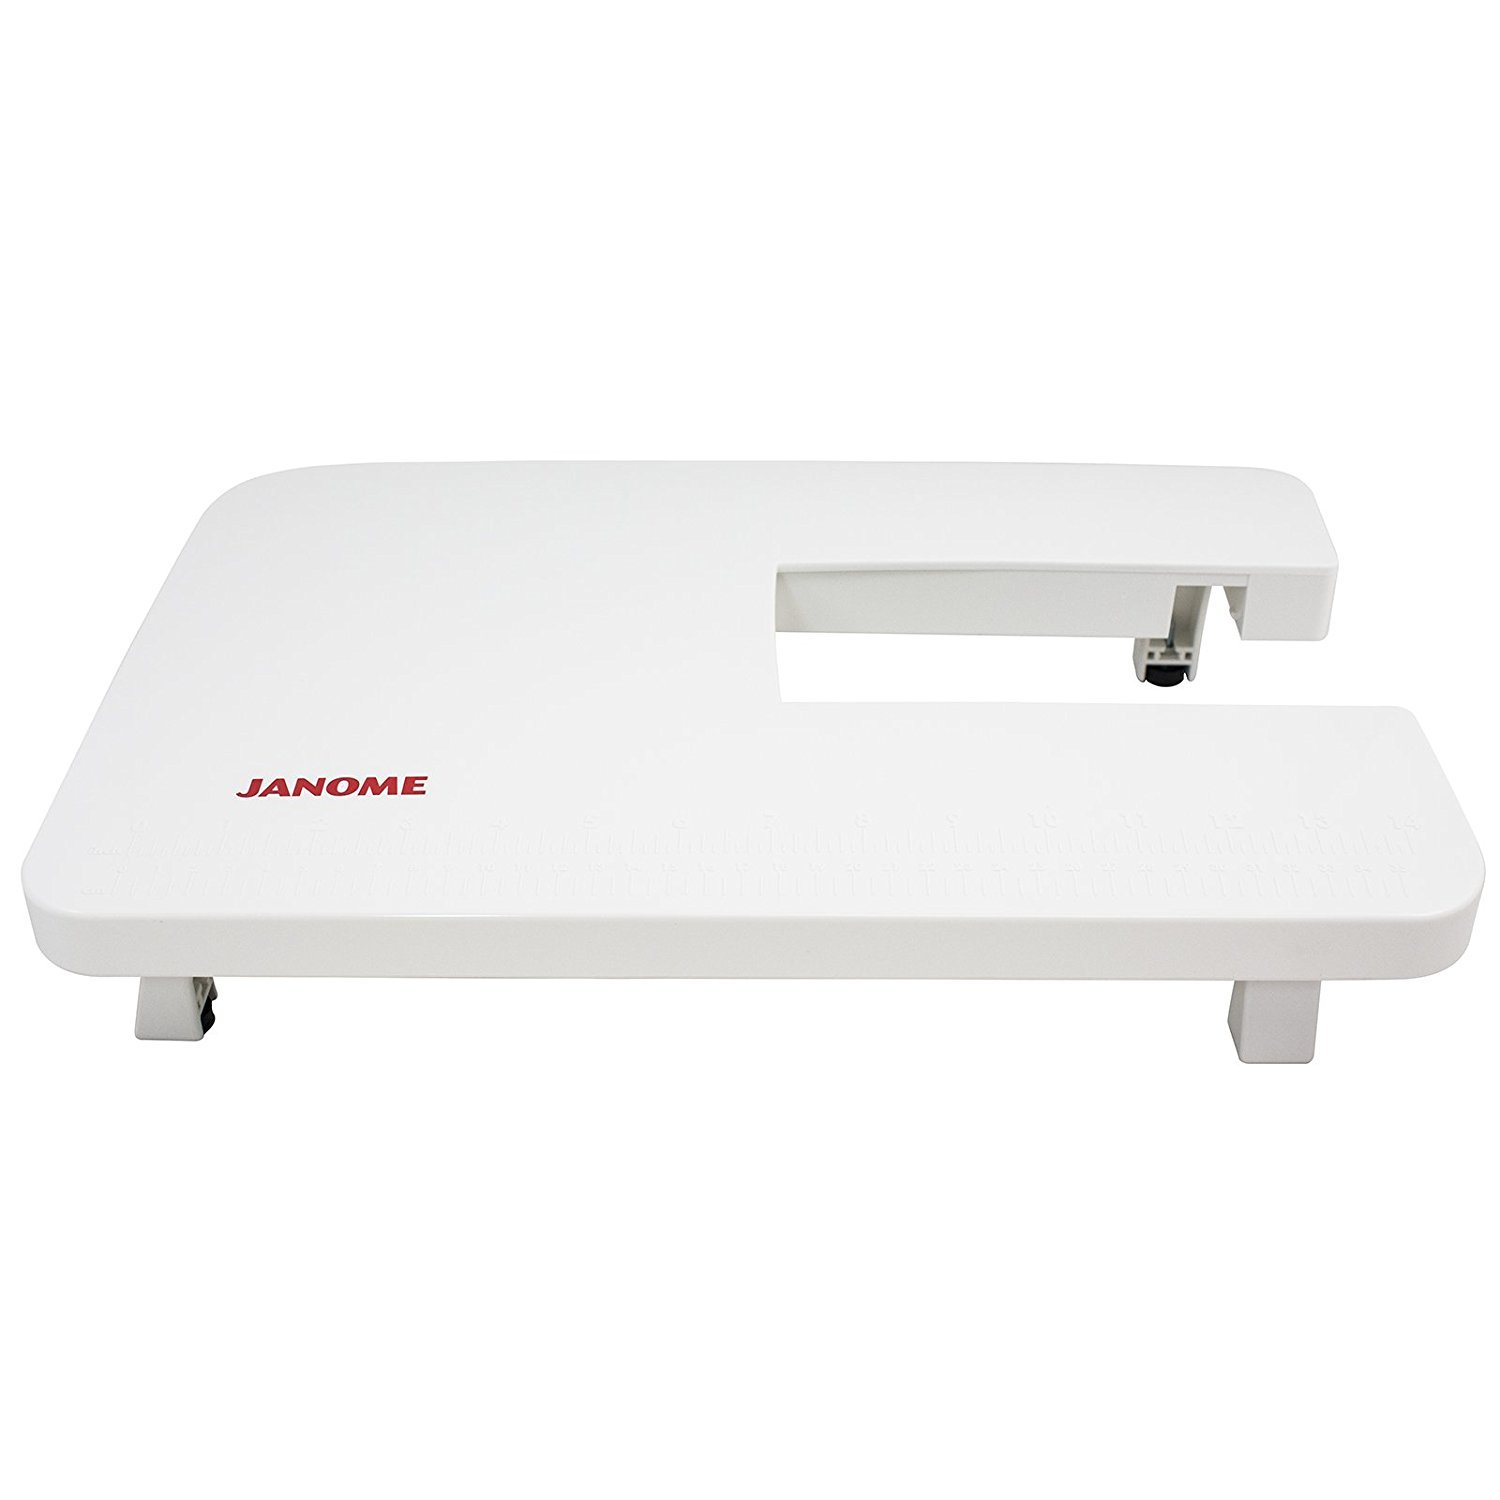 Janome 16'' x 11'' Extension Table Fits DC1050 8050 and More by Janome